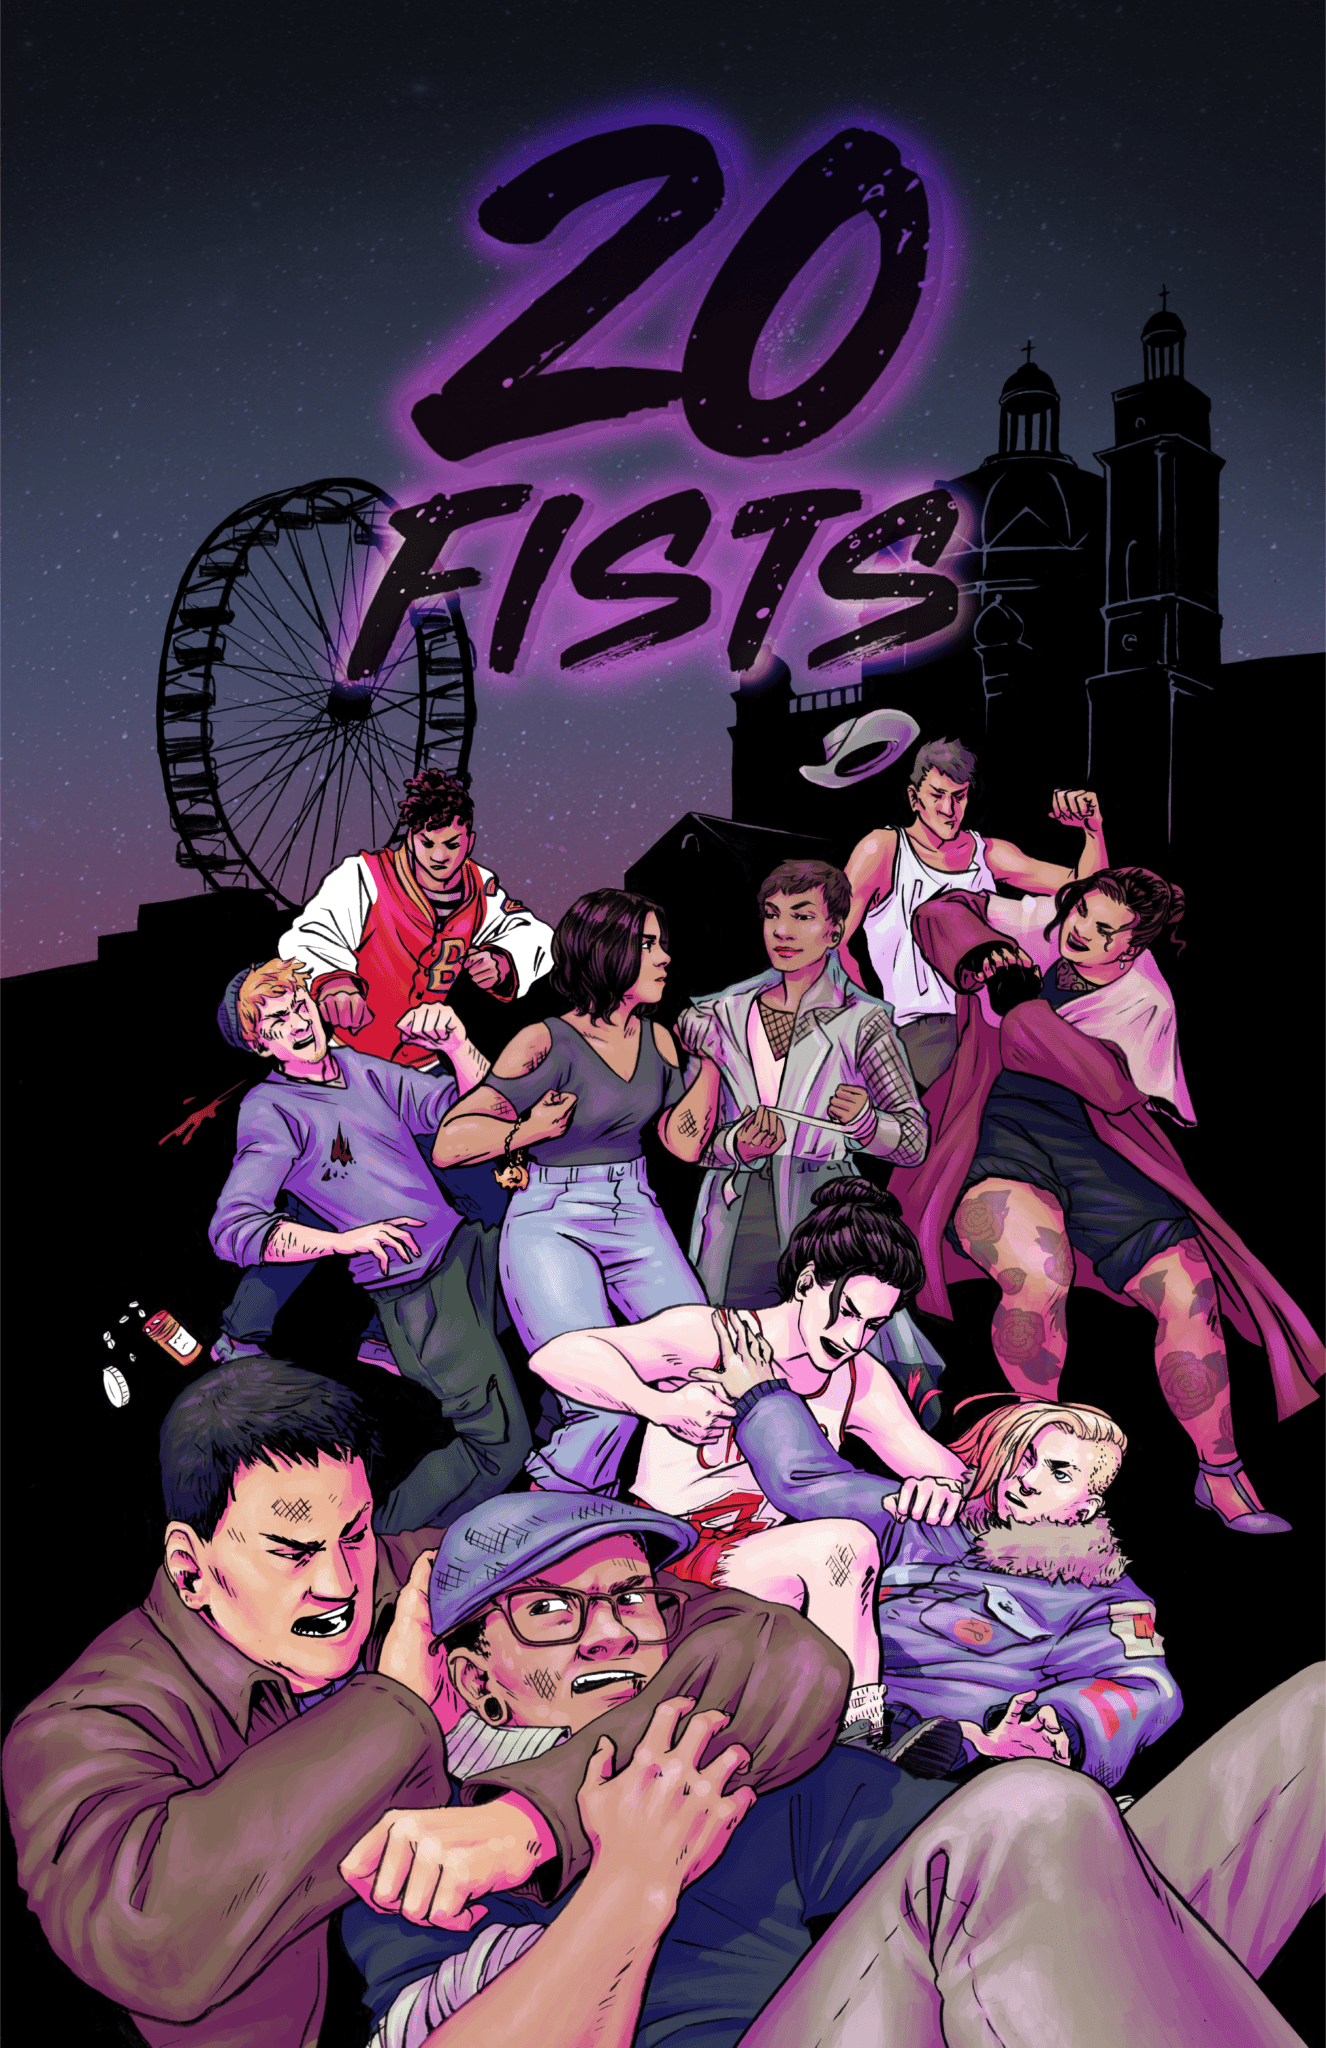 20 Fists #1 Cover